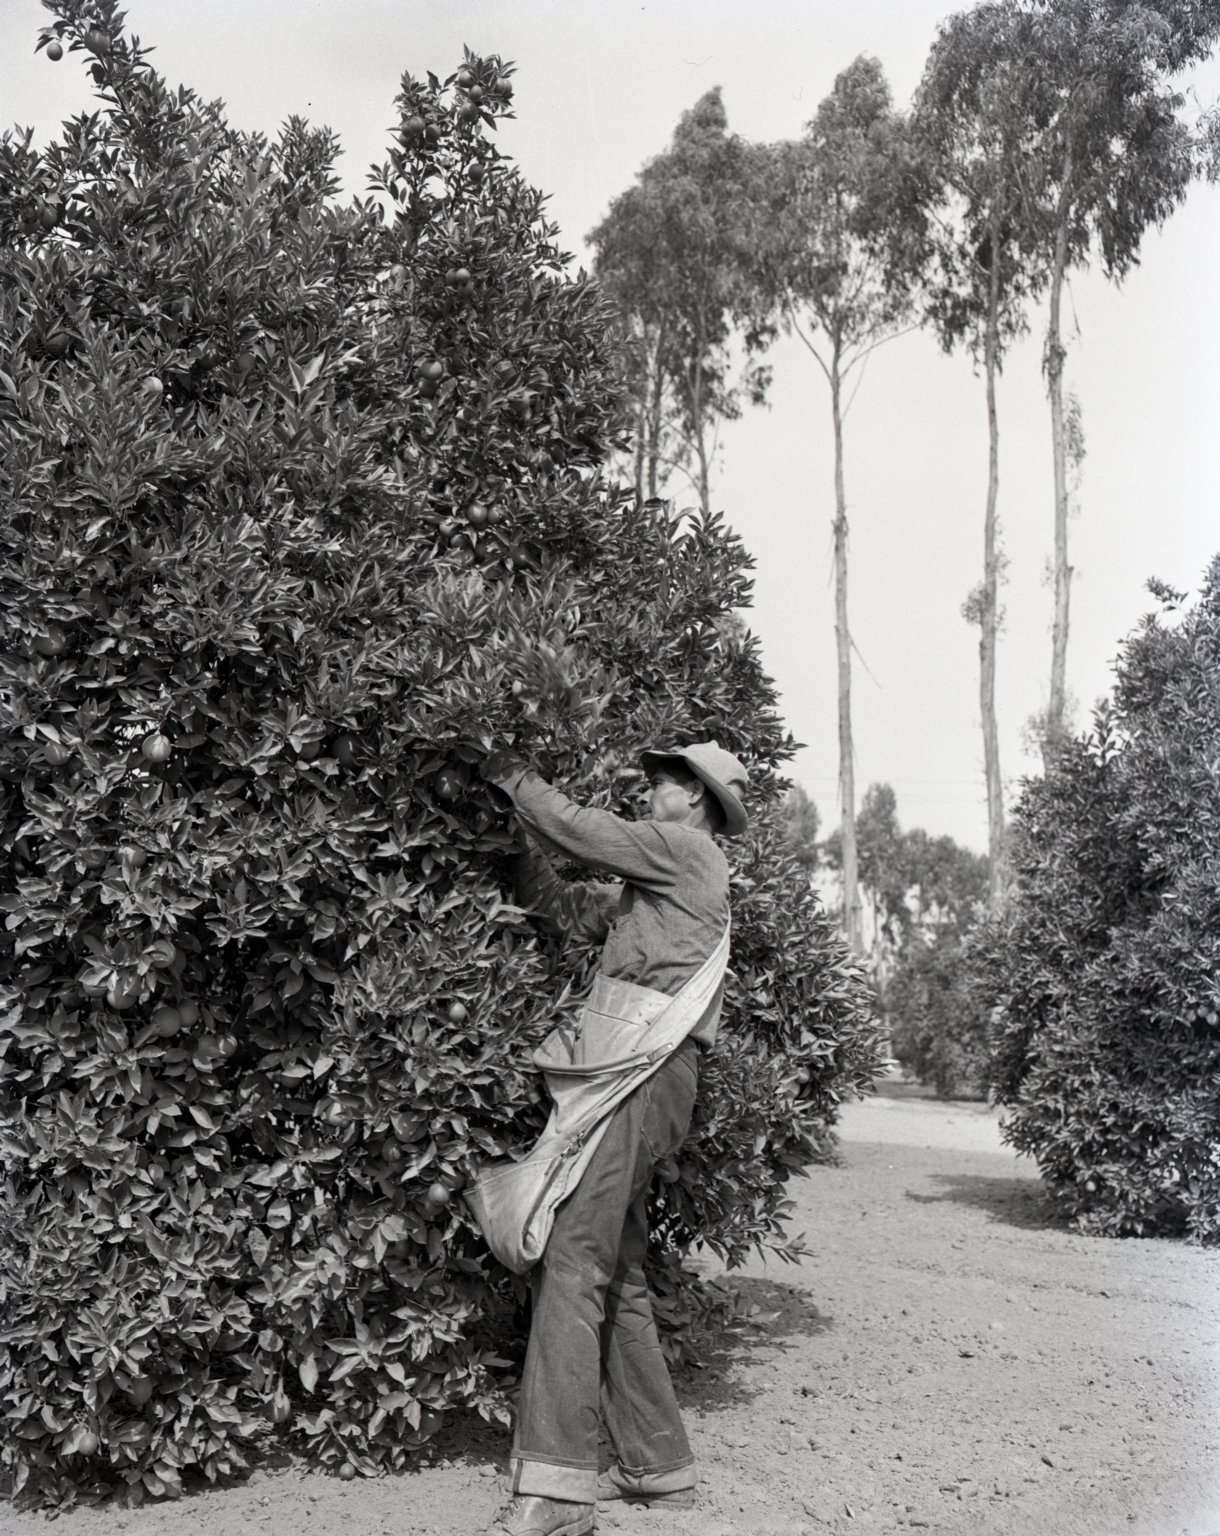 Field scene of the harvest. A man with a shoulder sack picking oranges.